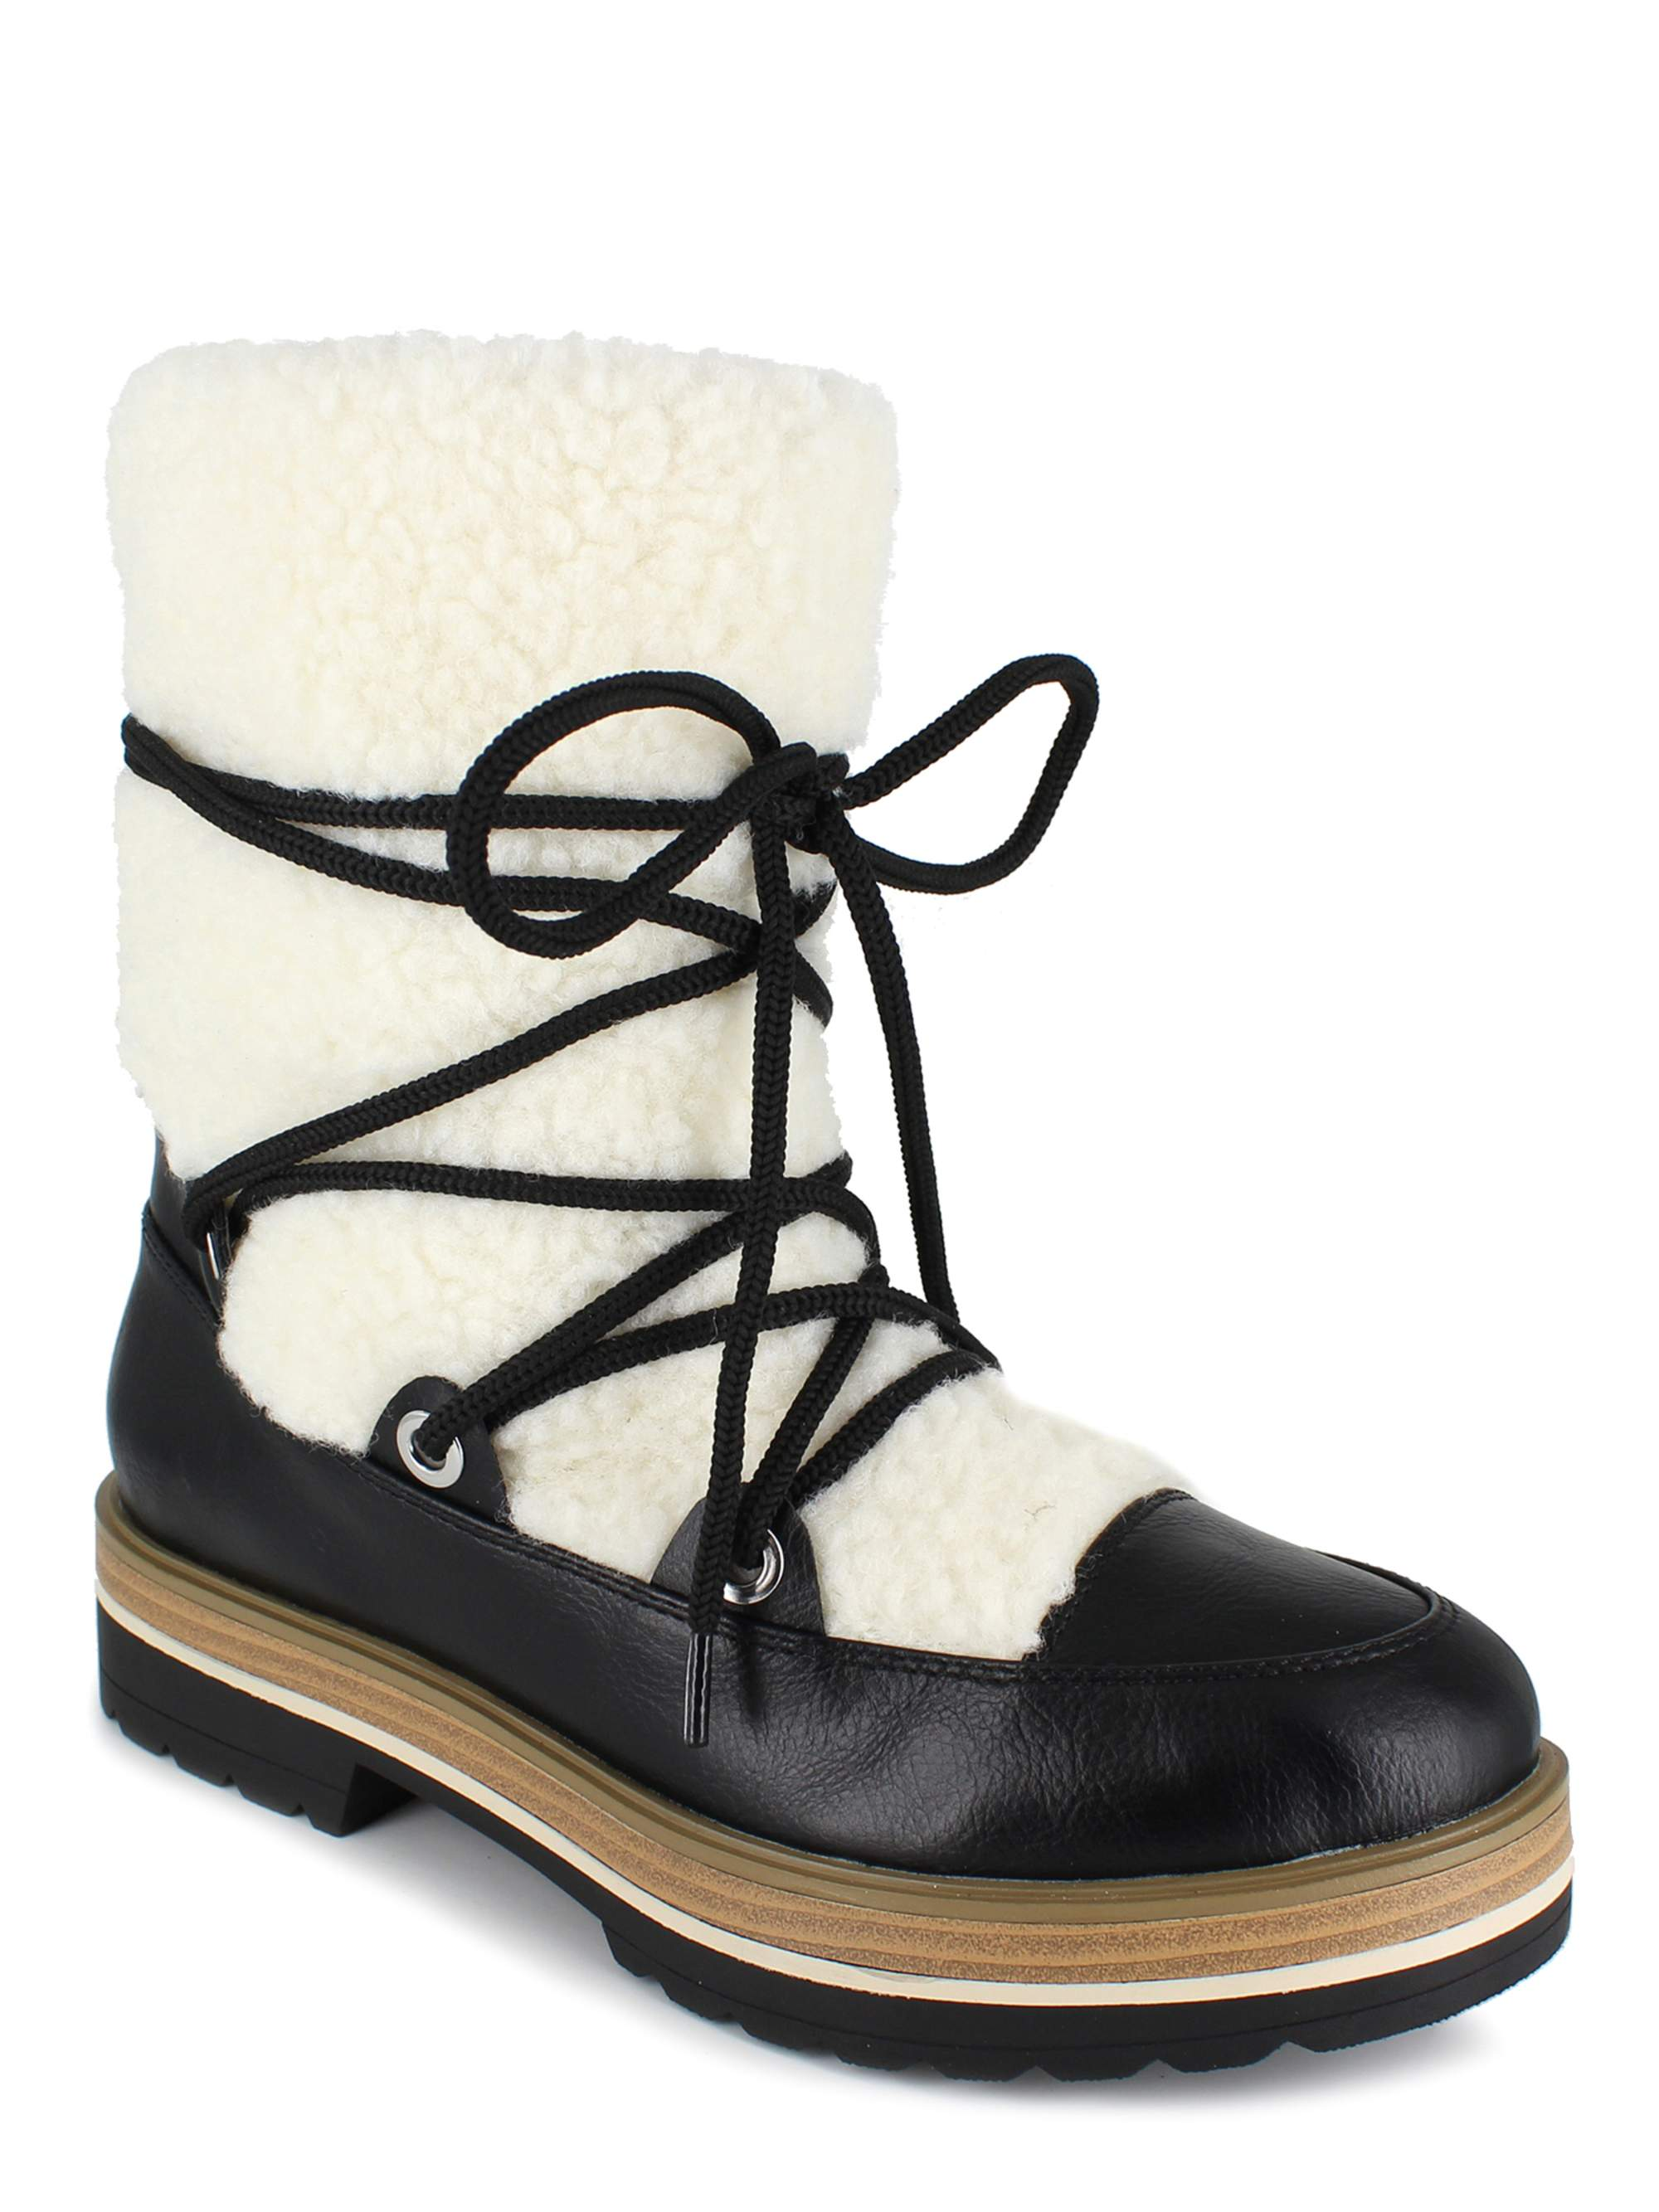 PORTLAND by Portland Boot Company Shearling Lace Up Boot